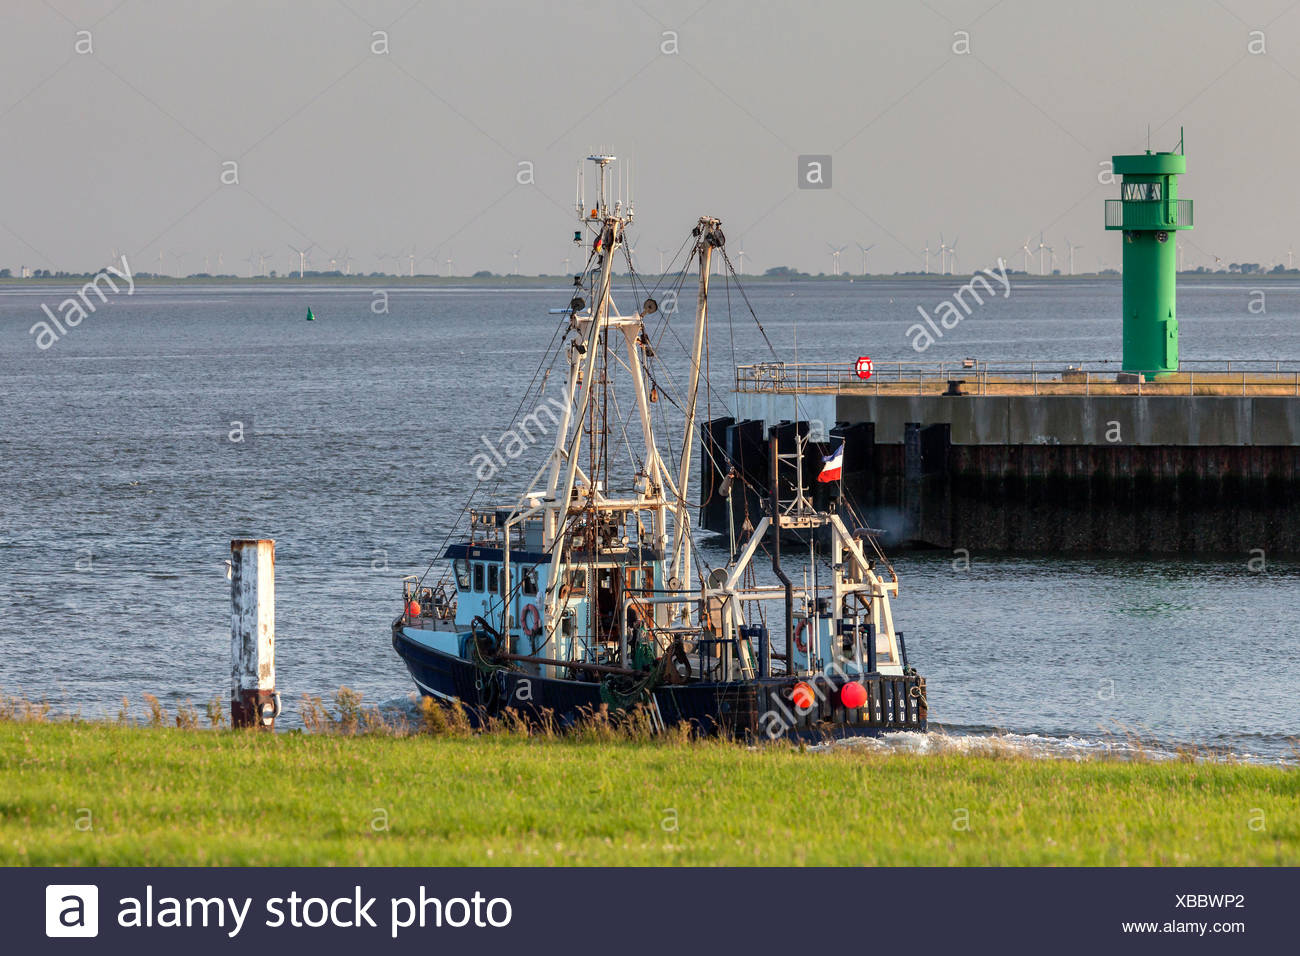 Crab cutters with the harbour exit, Büsum, Ditmarsh, Schleswig - Holstein, North Germany, Germany - Stock Image